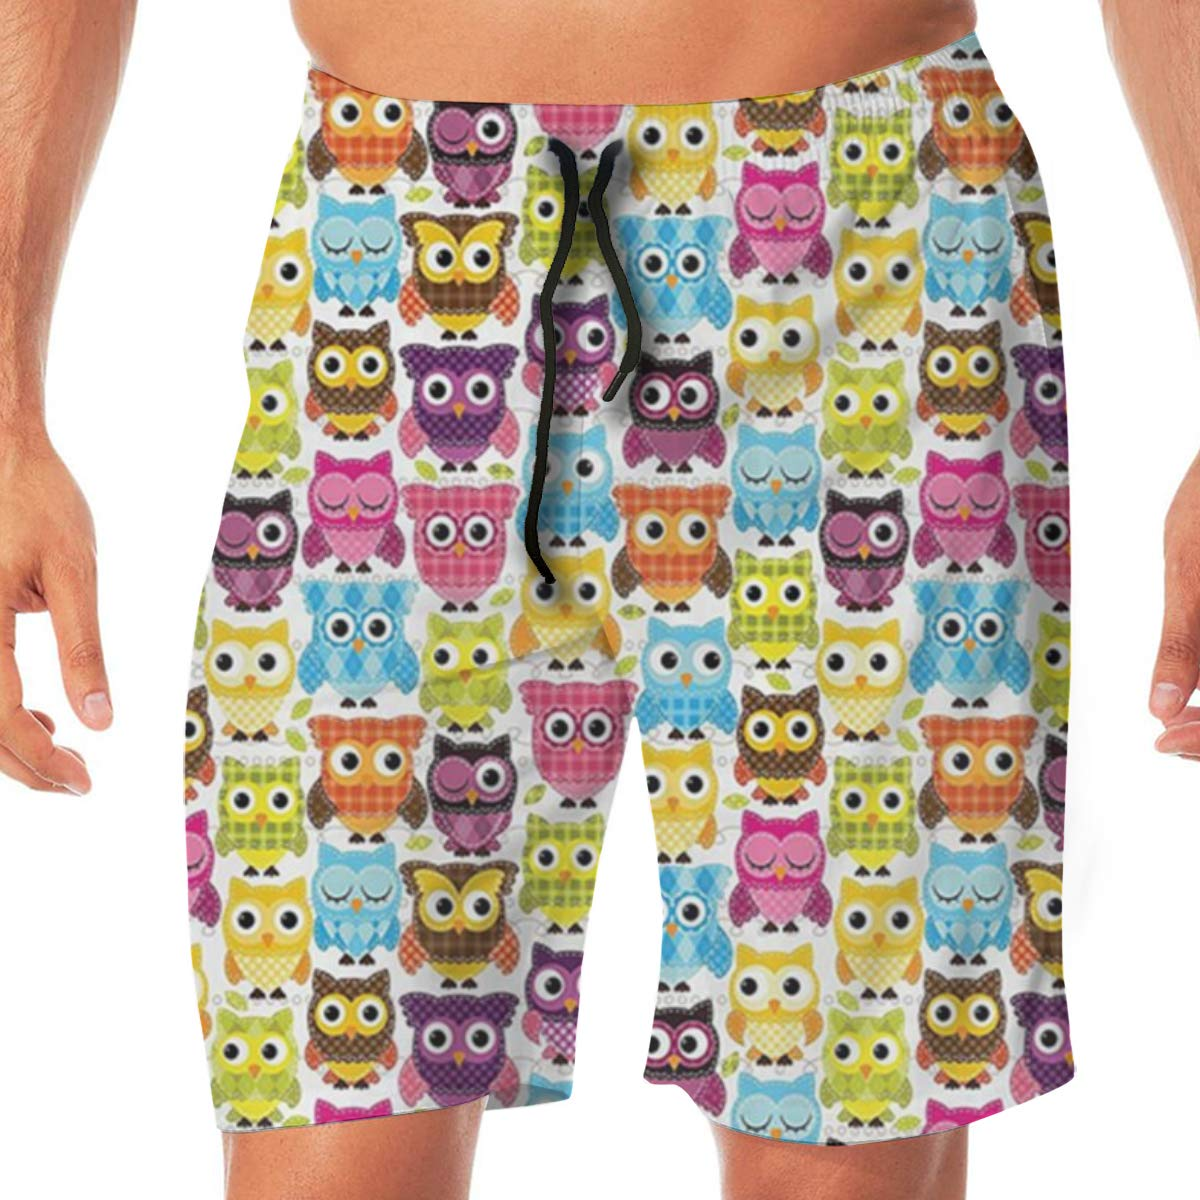 TR2YU7YT Owls with Different Expressions Casual Mens Swim Trunks Quick Dry Printed Beach Shorts Summer Boardshorts Bathing Suits with Drawstring